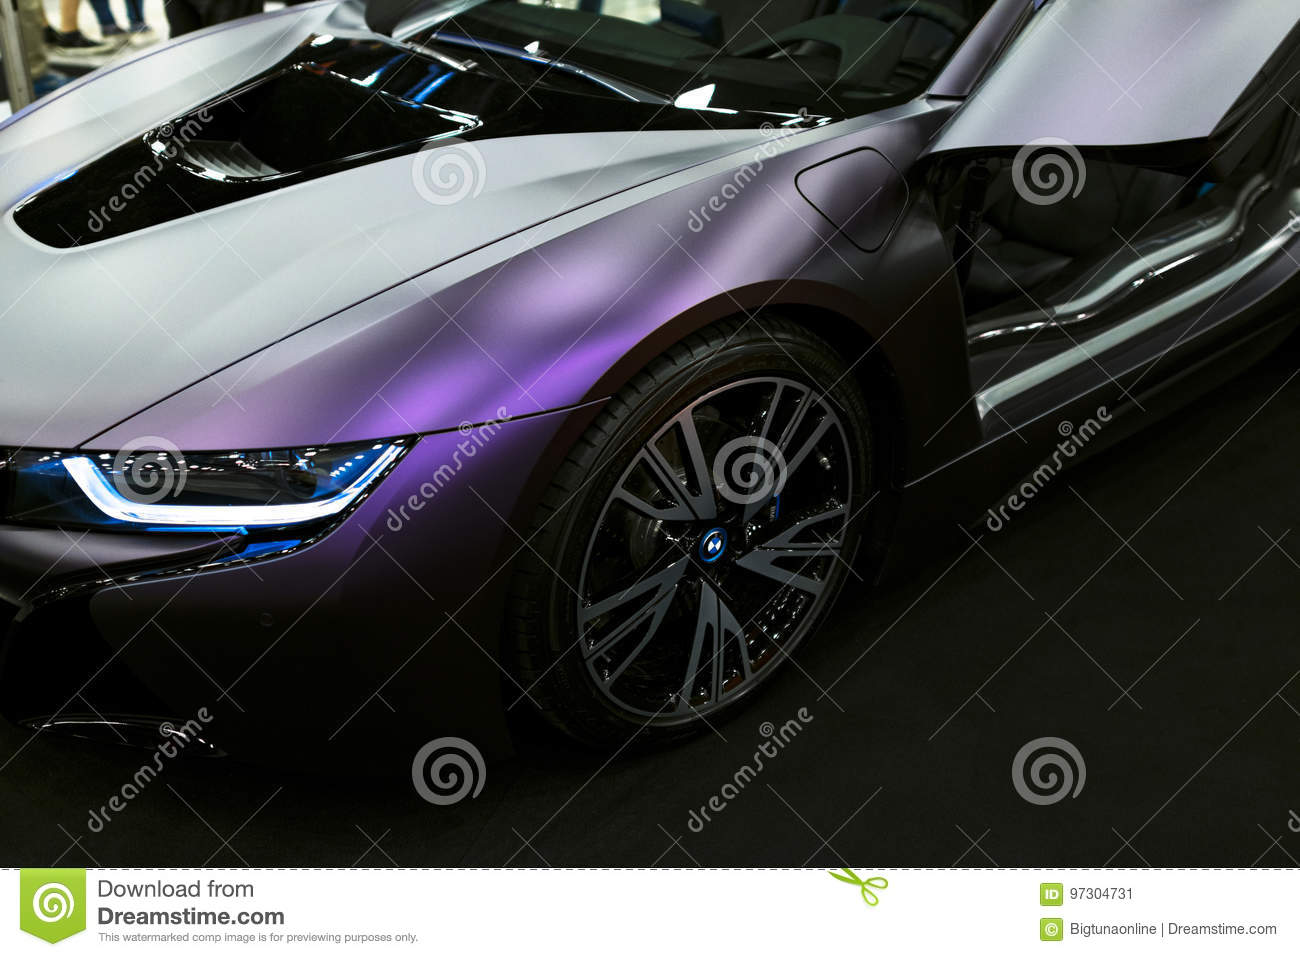 Luxury Bmw I8 Hybrid Electric Coupe Plug In Hybrid Sport Car